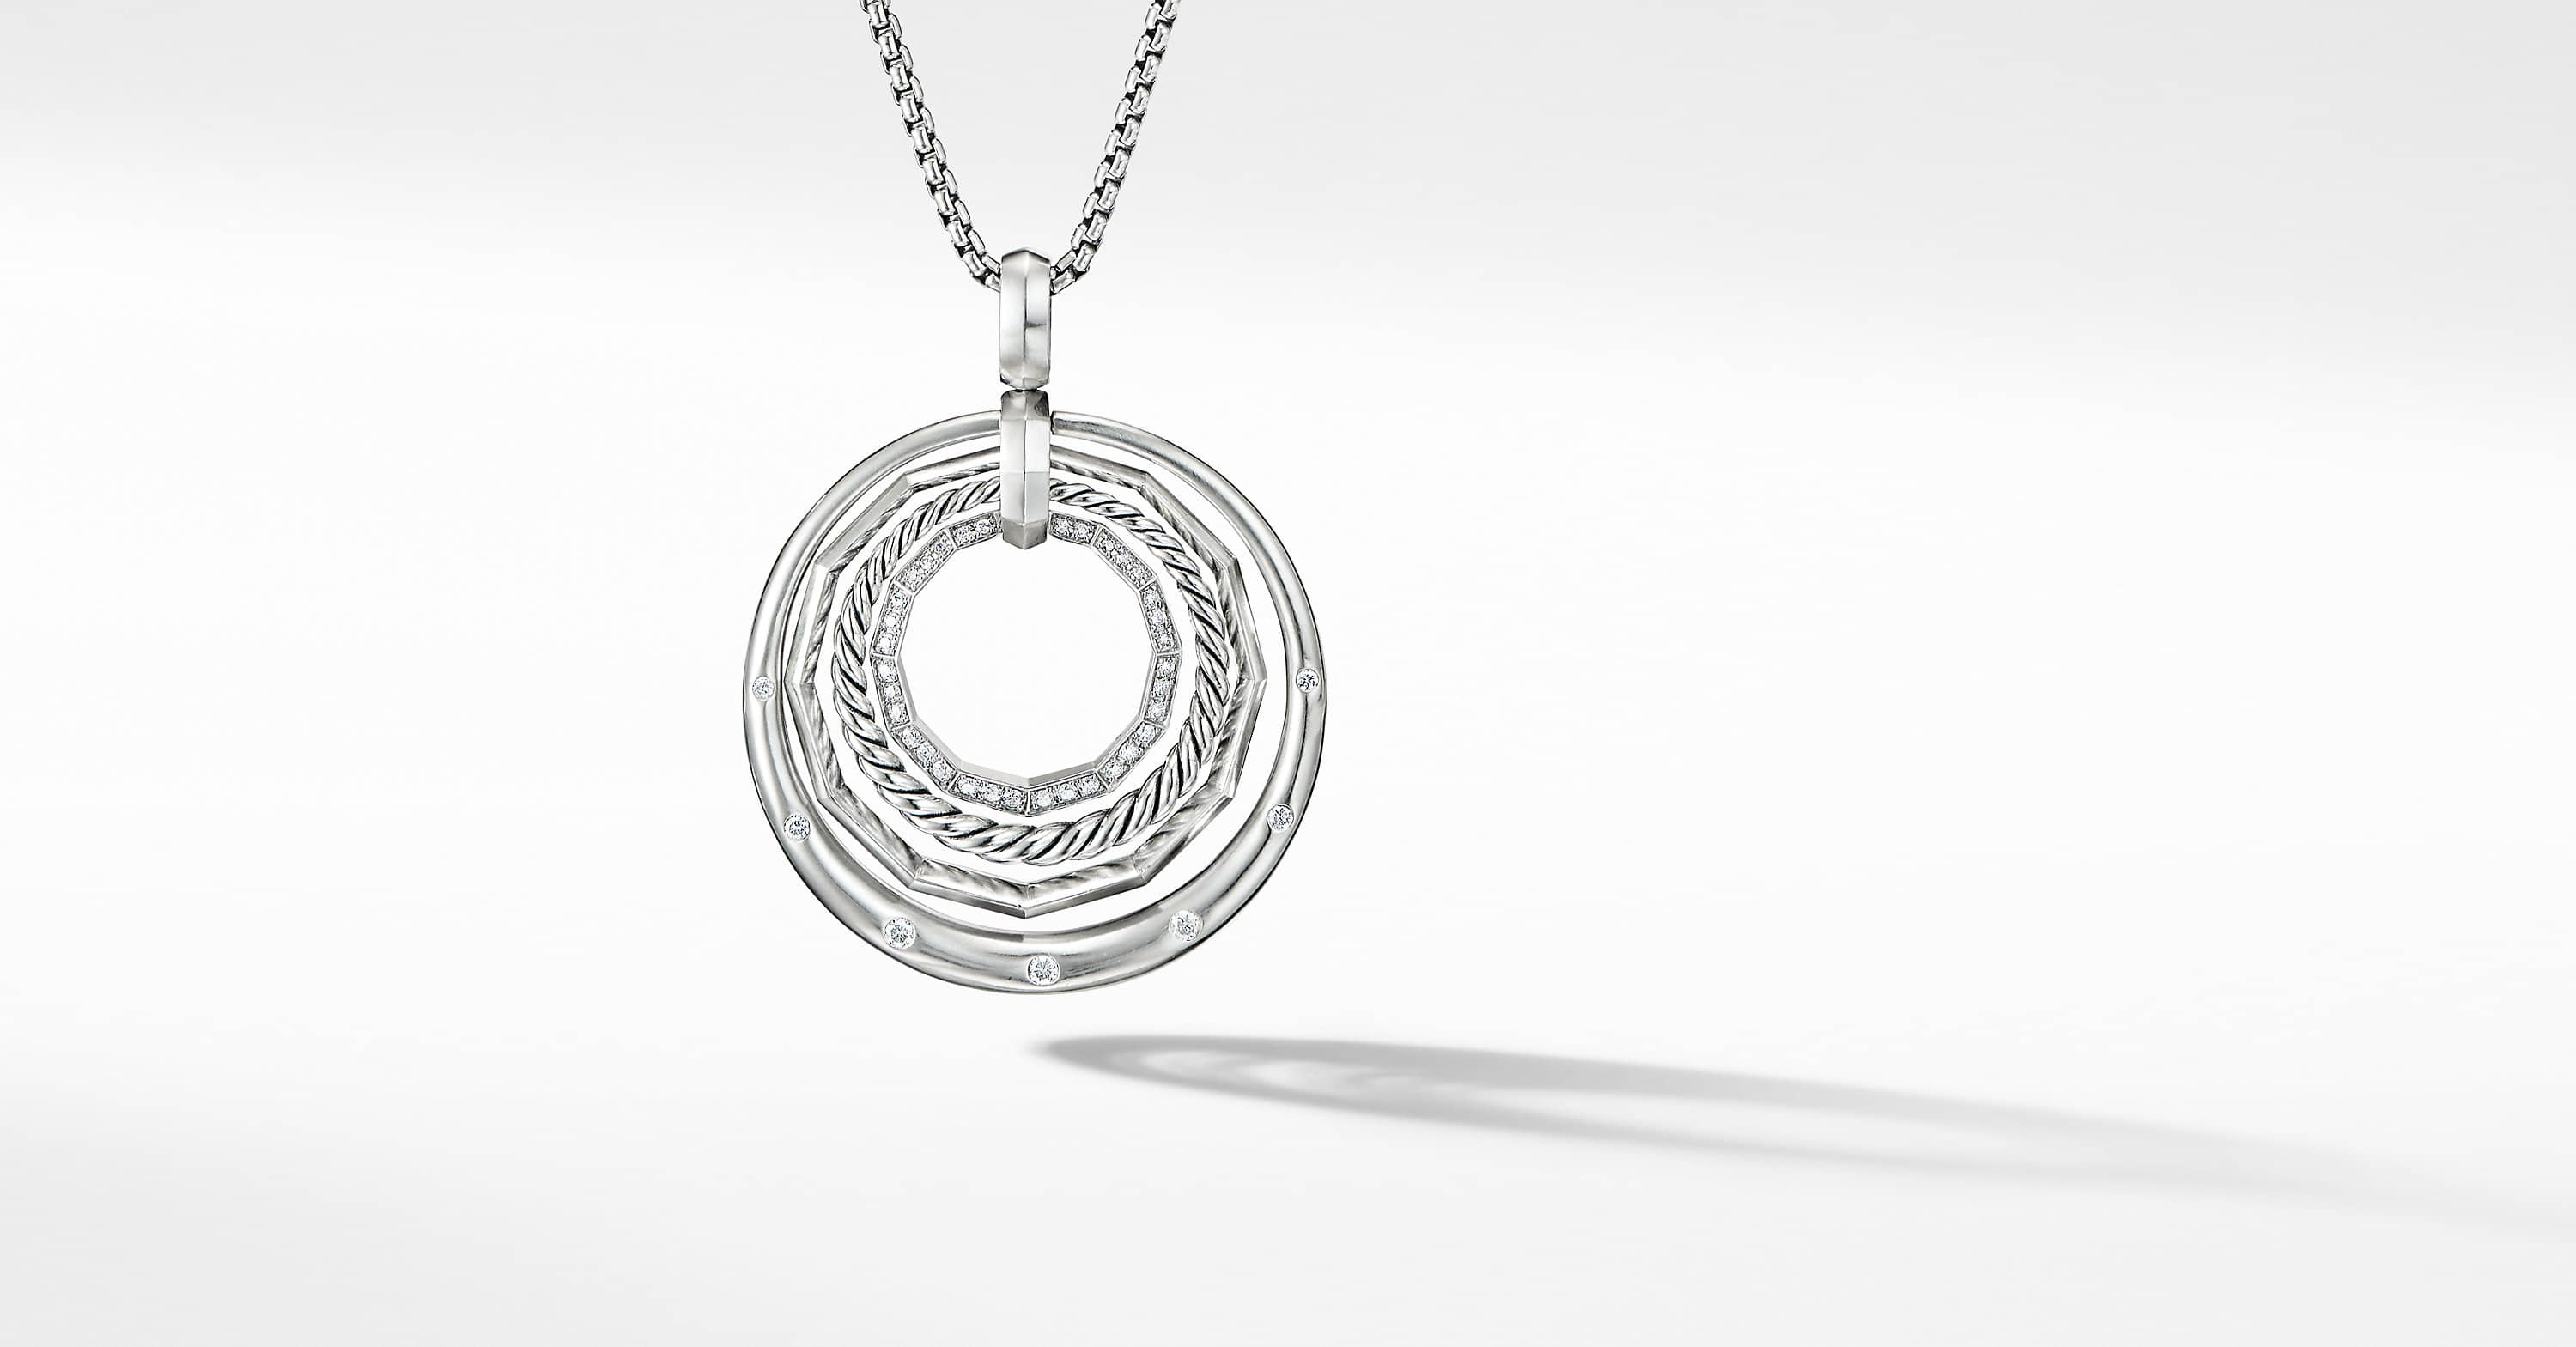 Stax Medium Pendant Necklace with Diamonds, 32mm